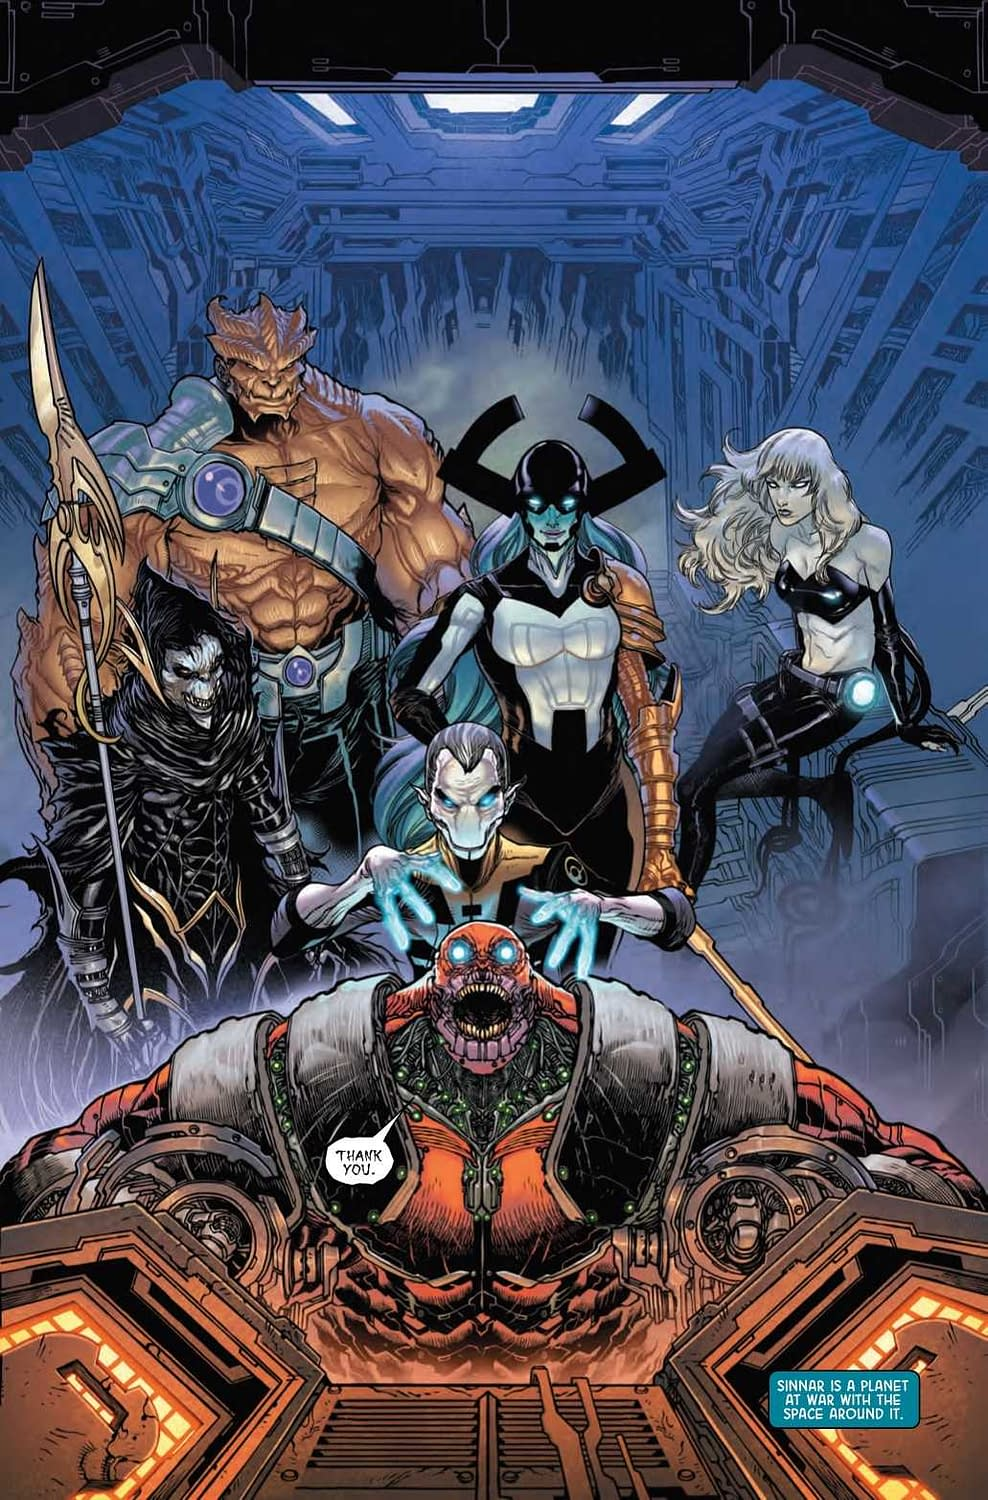 Proxima Midnight's Tips for a Happy and Healthy Sex Life in Next Week's Black Order #2